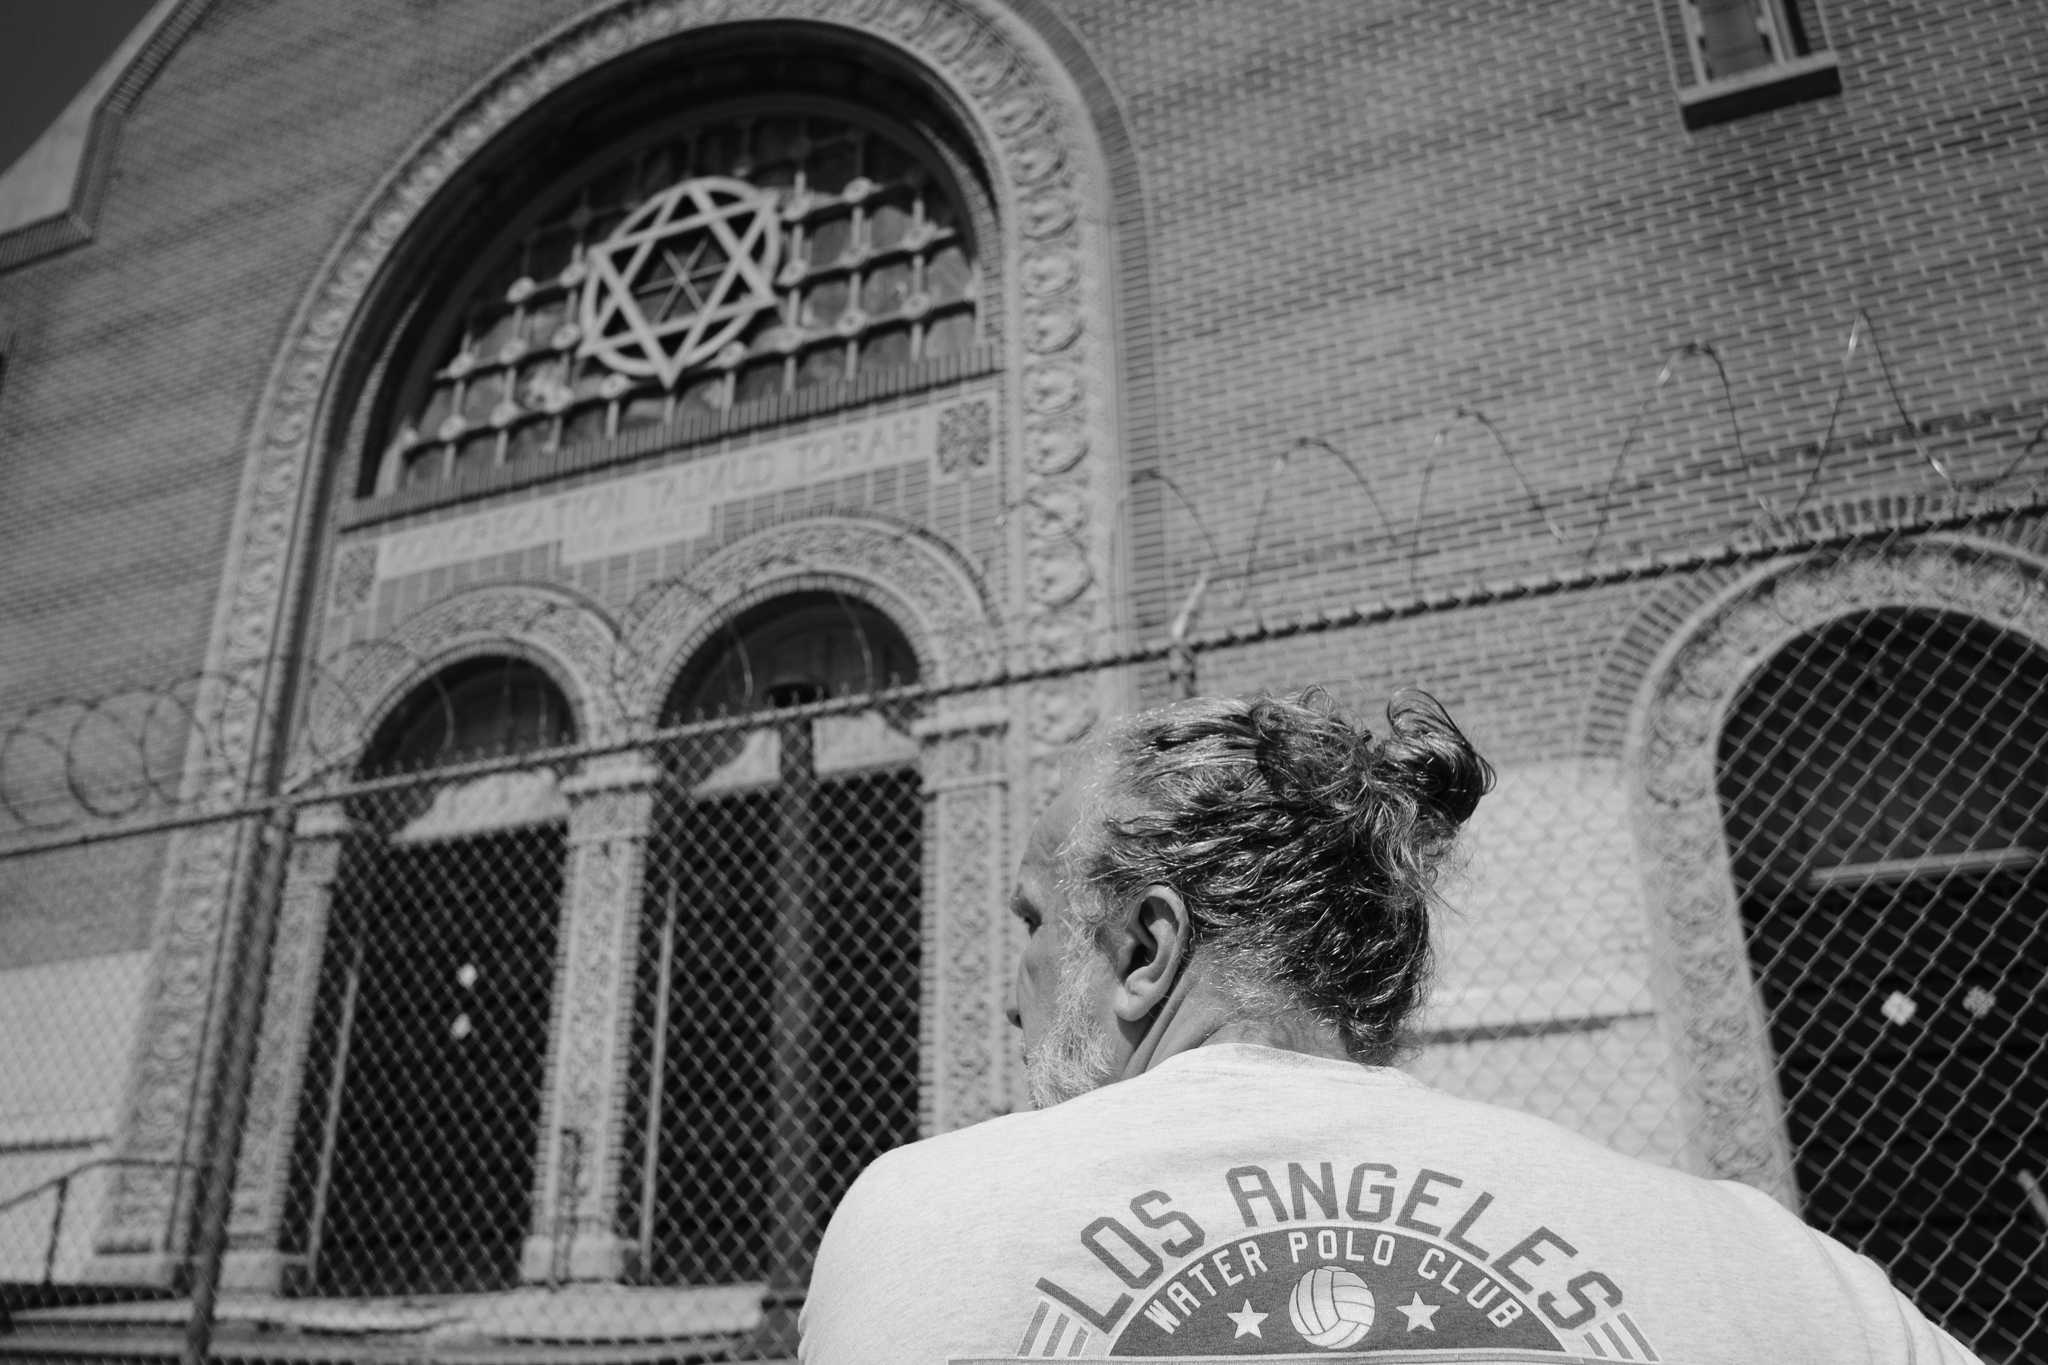 On May 11, Dr. Graves stands in front of an old and now abandoned synagogue. Just one of the many remnants of the huge Jewish community that once lived here. Photo credit: Blake Berry